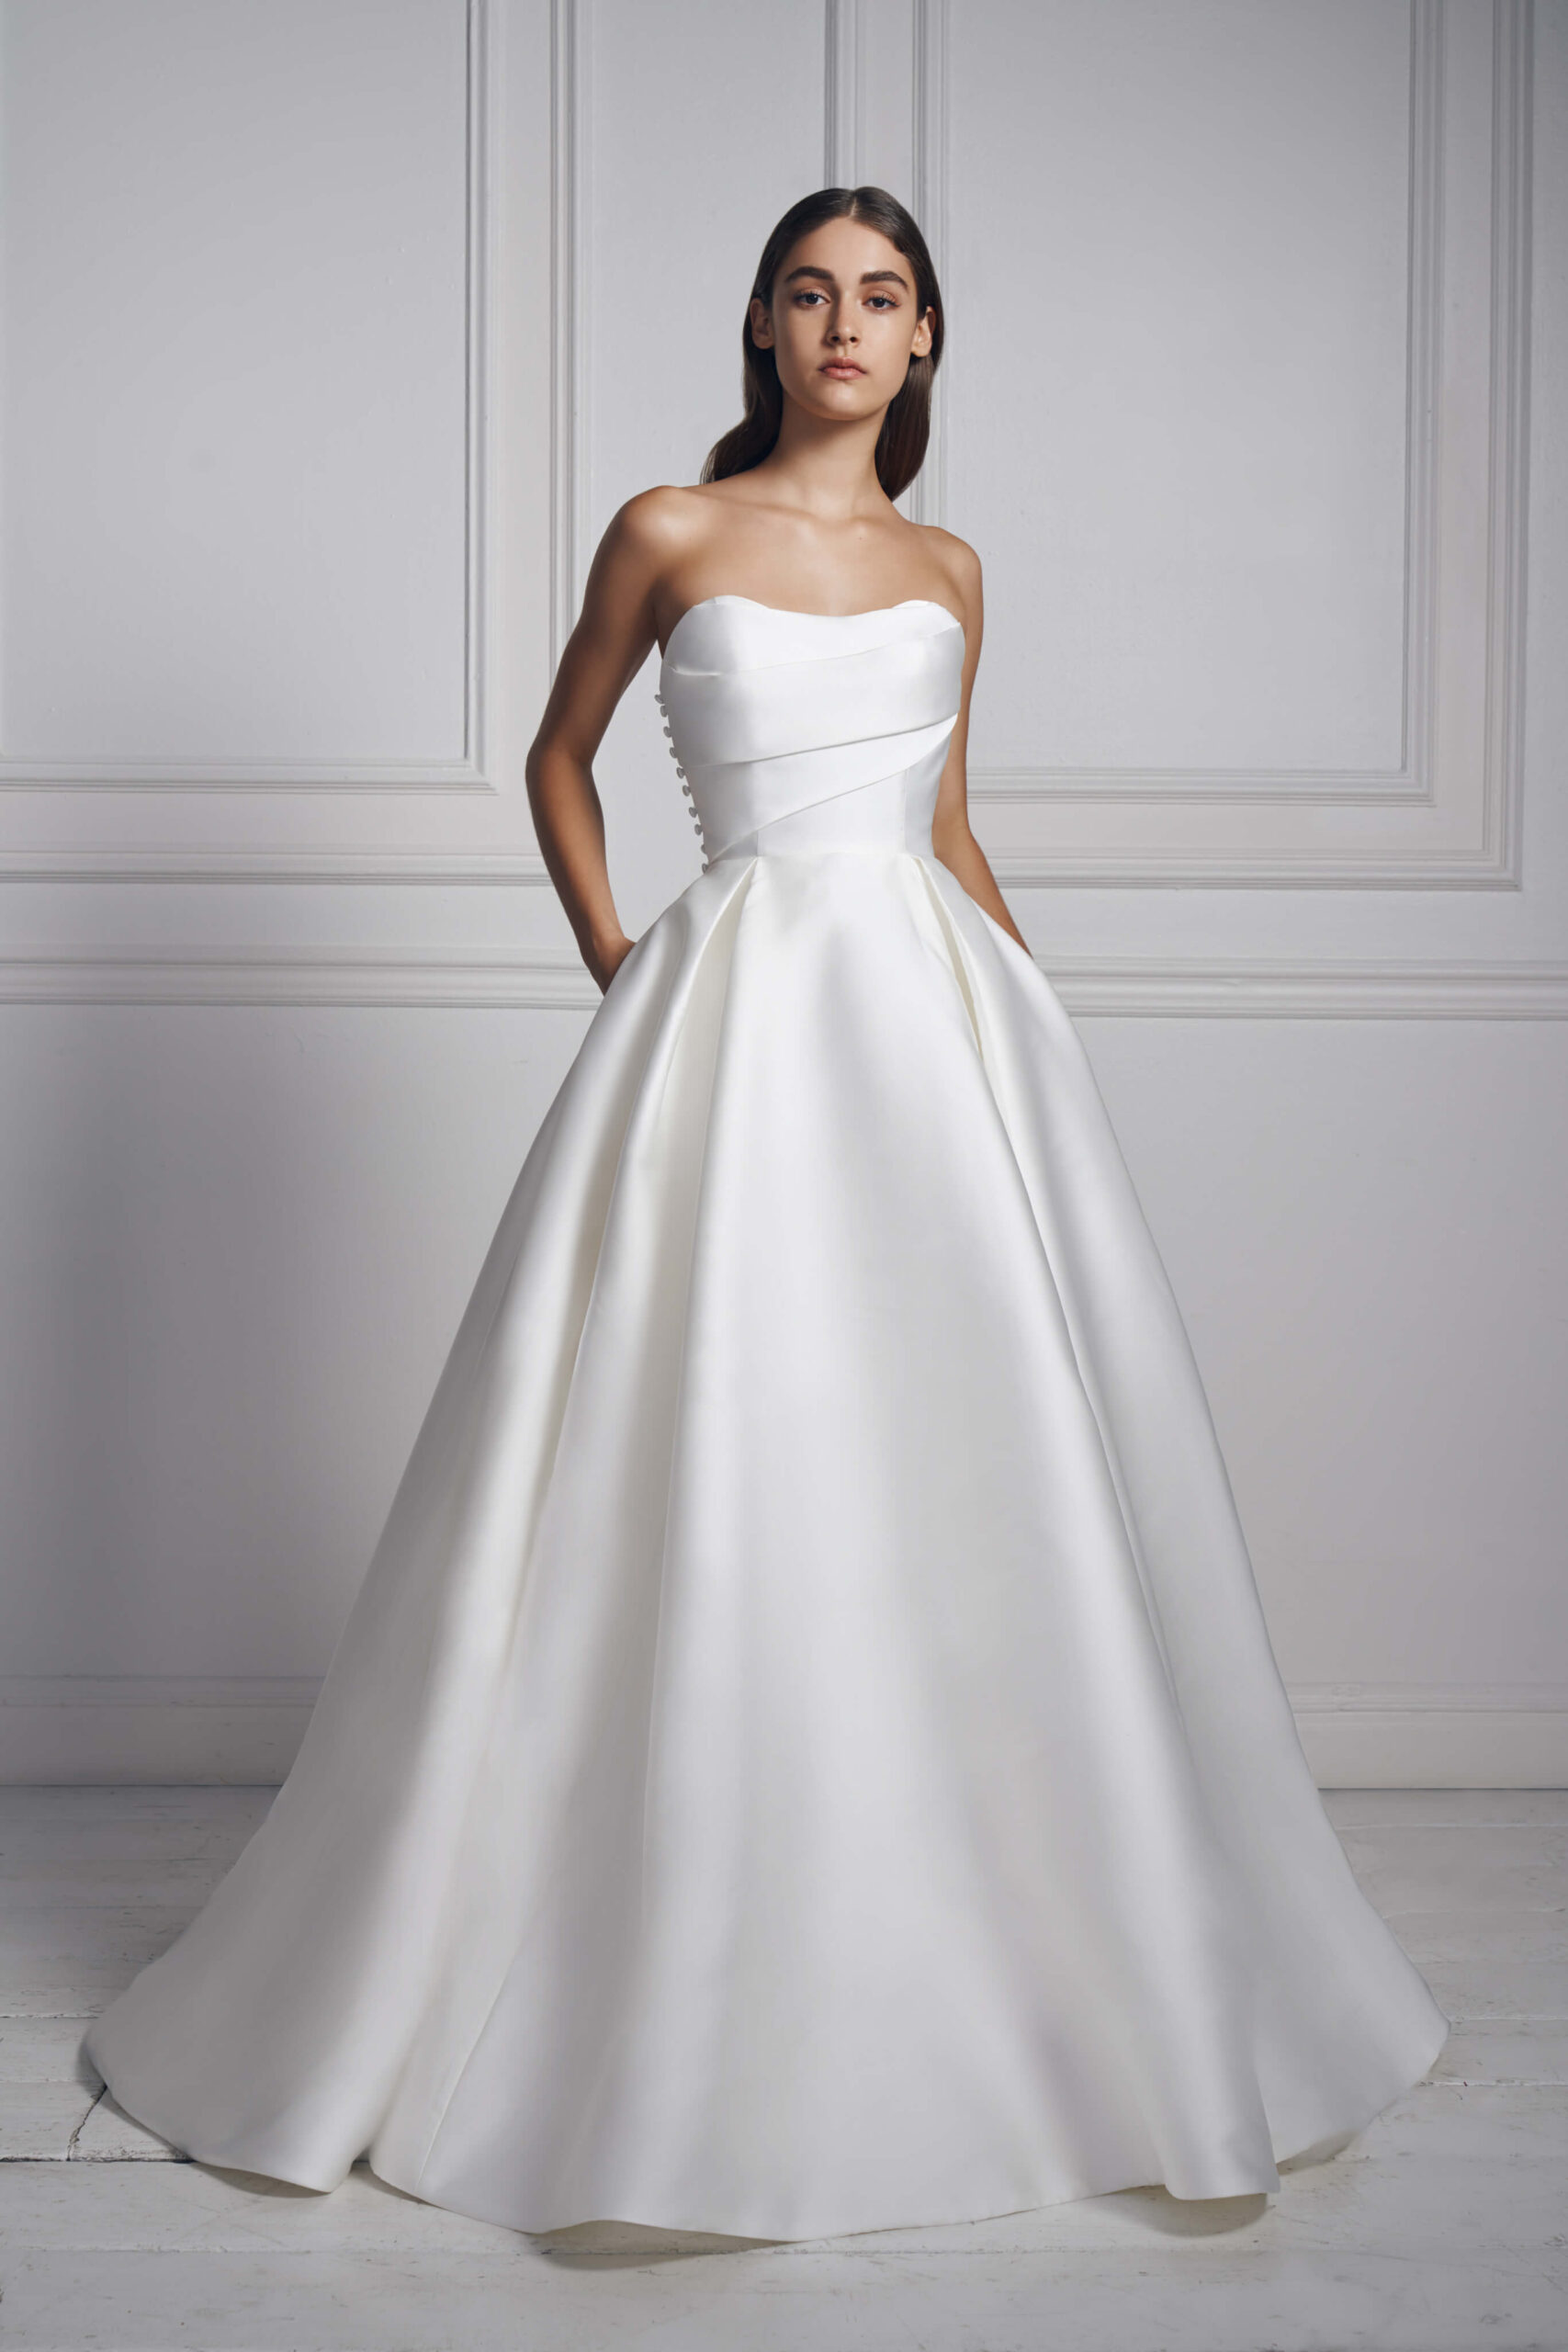 Strapless white silk ball gown by Anne Barge. This classic ball gown is adorned with buttons.